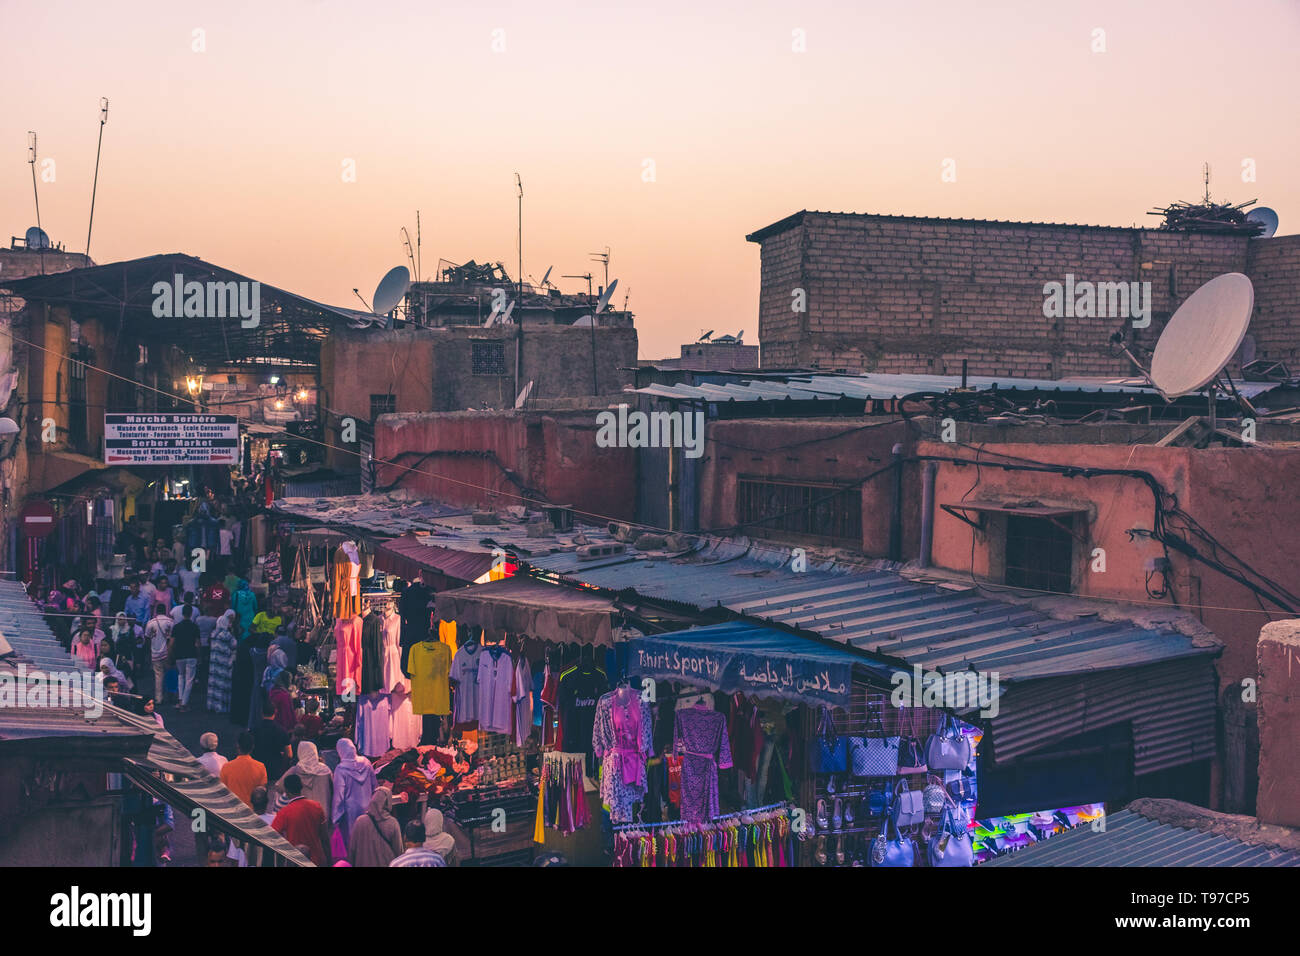 MARRAKECH, MOROCCO, 31 AUGUST 2018: view from above of a crowded market street in Marrakech Stock Photo